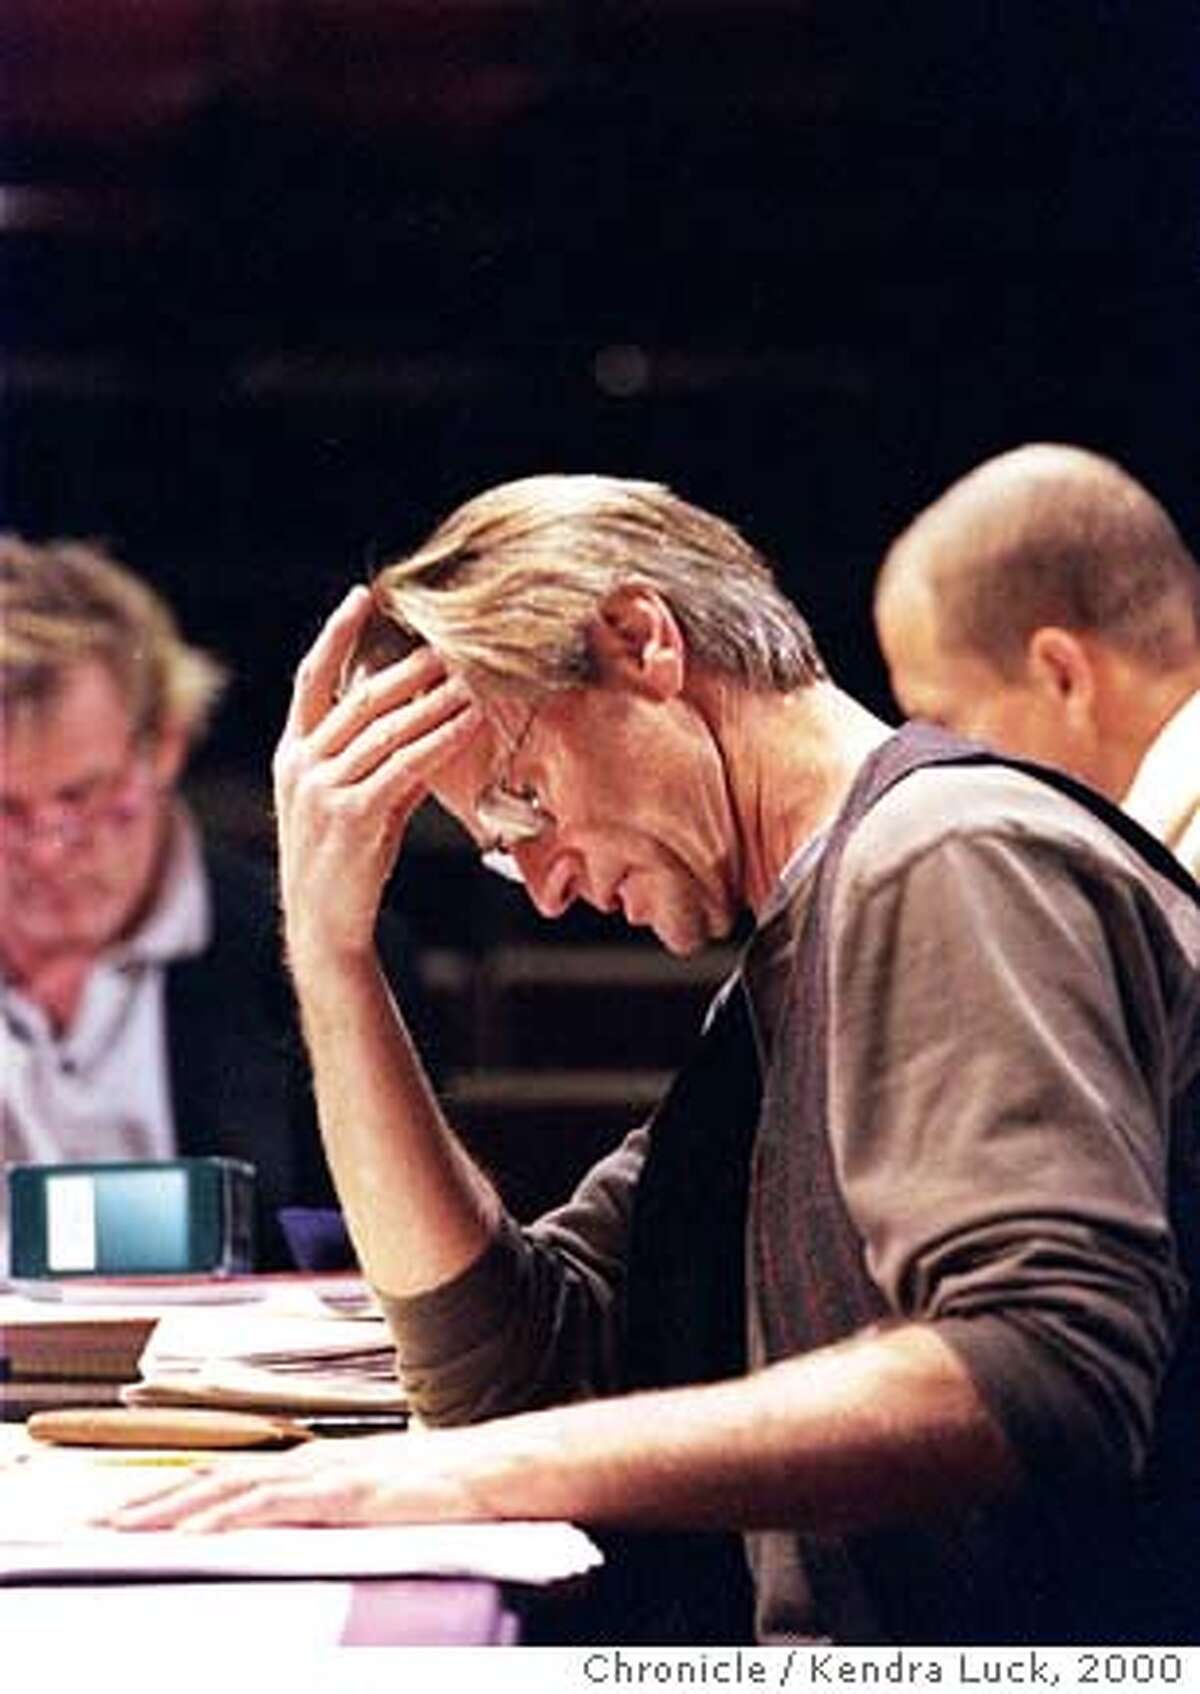 SHEPARD05 5-C-22OCT00-PK-KL--Actor and playwright Sam Shepard during a rehersal of his new play 'The Late Henry Moss' at the Magic Theatre in San Francisco. (KENDRA LUCK/SAN FRANCISCO CHRONICLE)